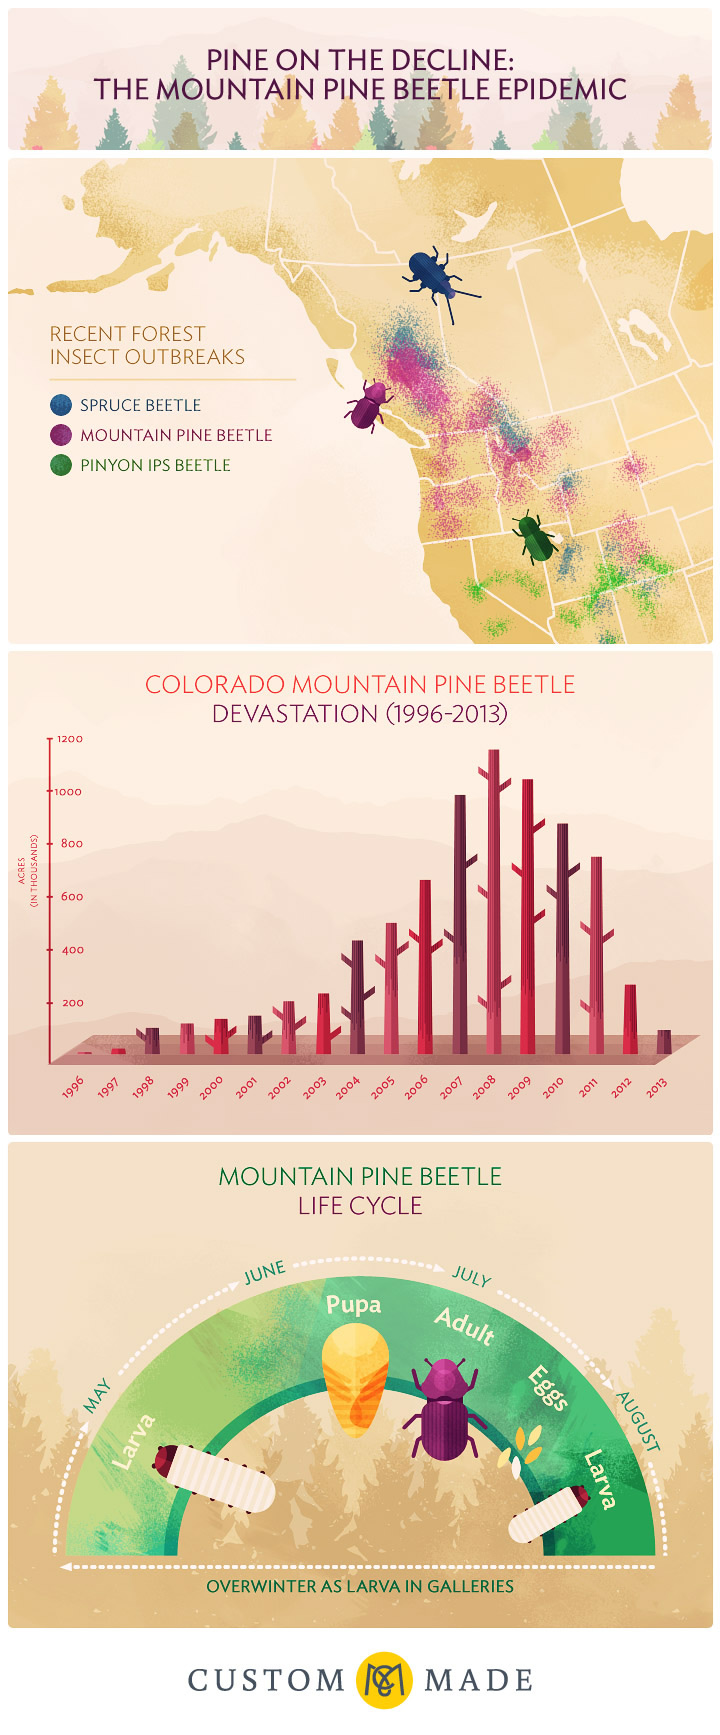 Pine on the Decline: The Mountain Pine Beetle Epidemic